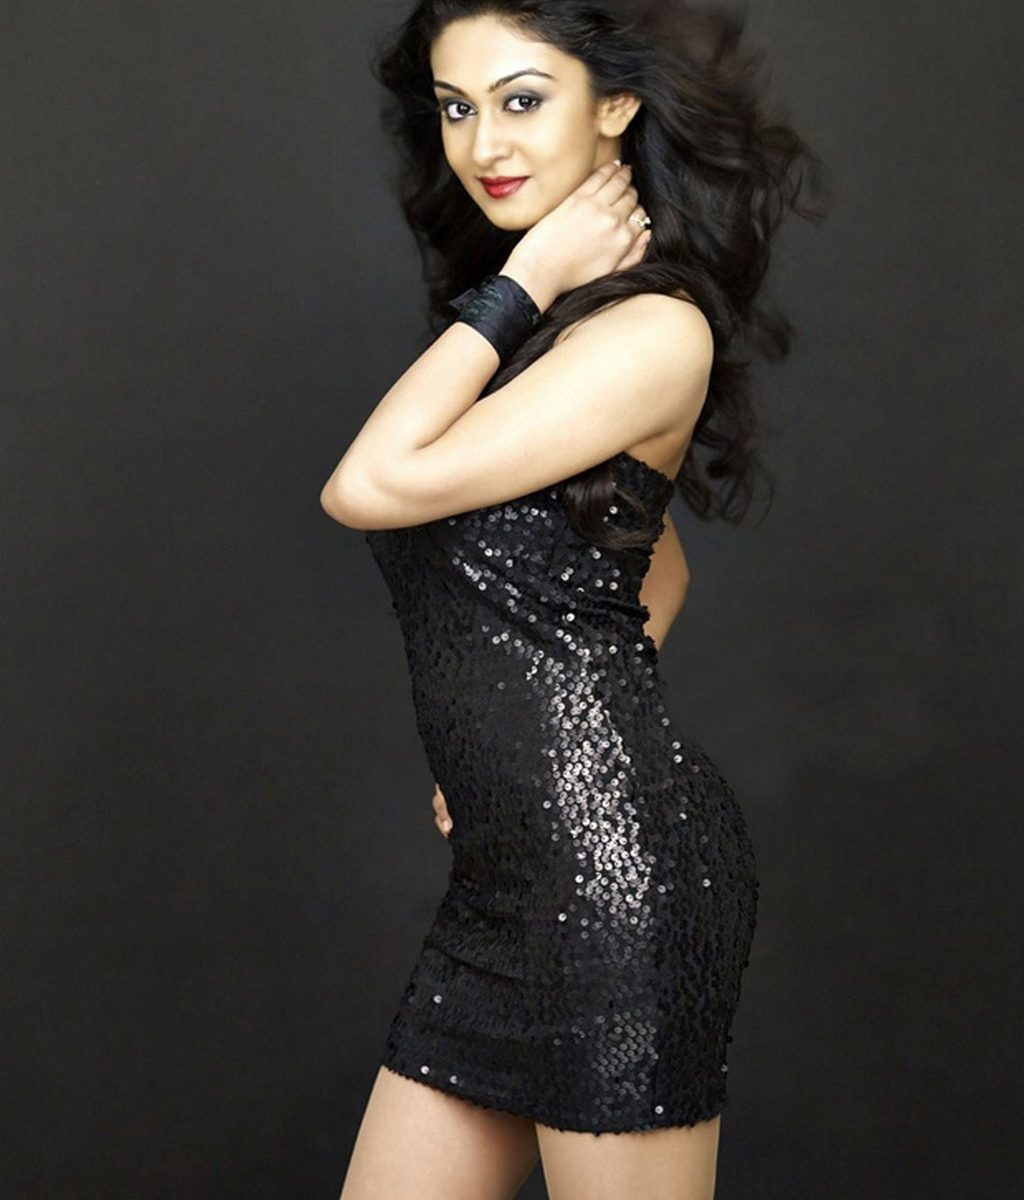 Aishwarya Arjun sexy in black dress